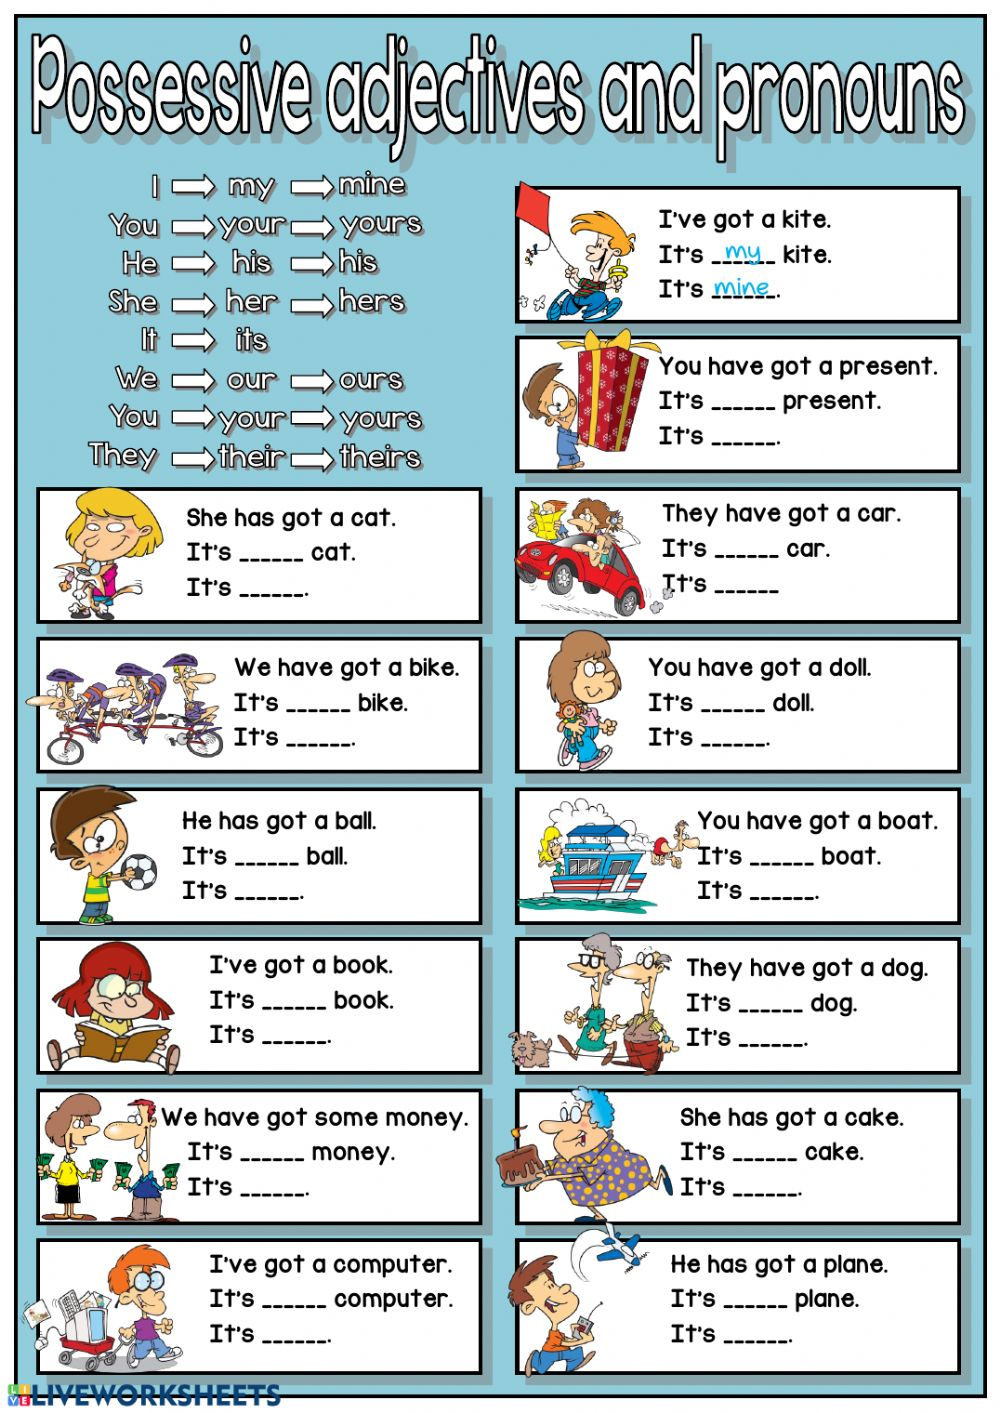 Ejercicio De Possessive Adjectives And Pronouns